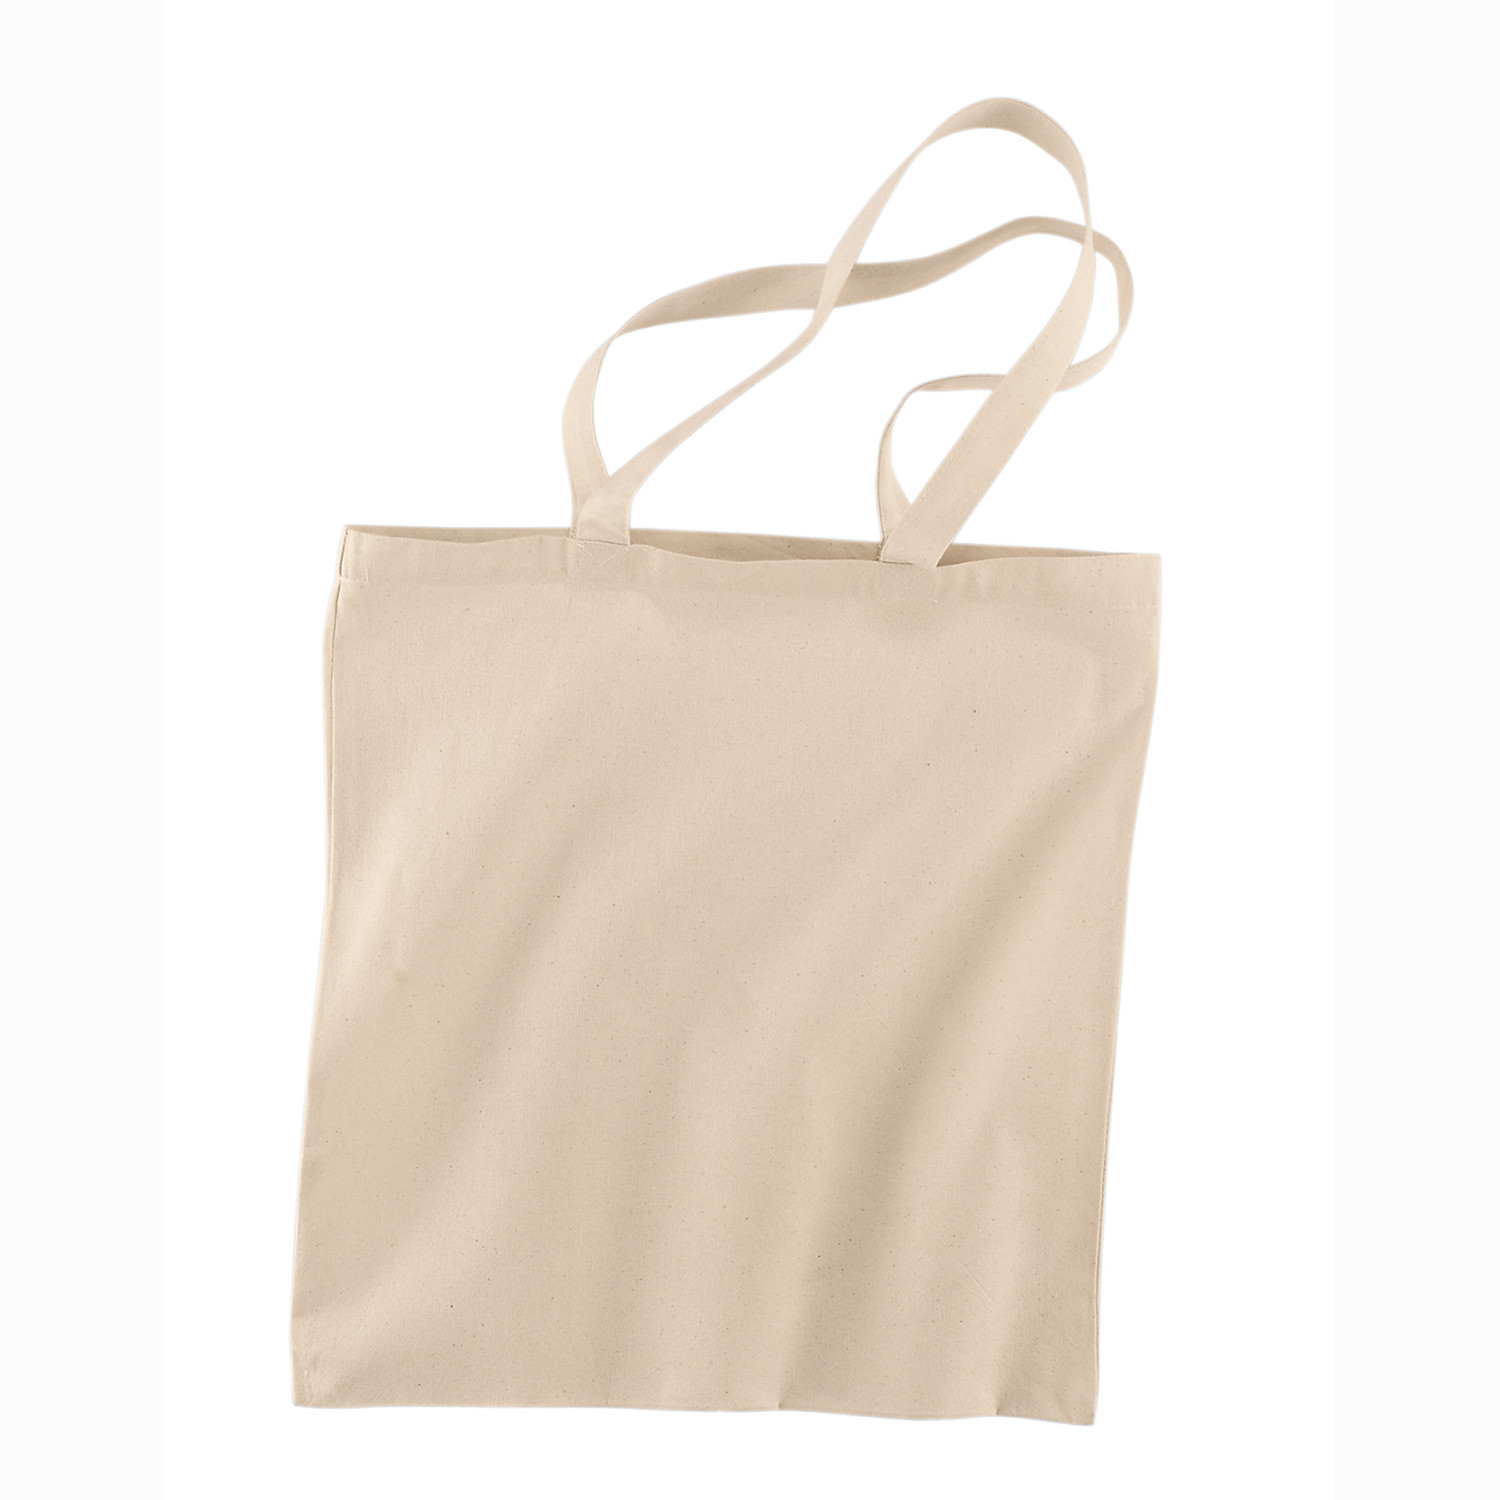 River's End 8860 - Flat Canvas Tote Bag